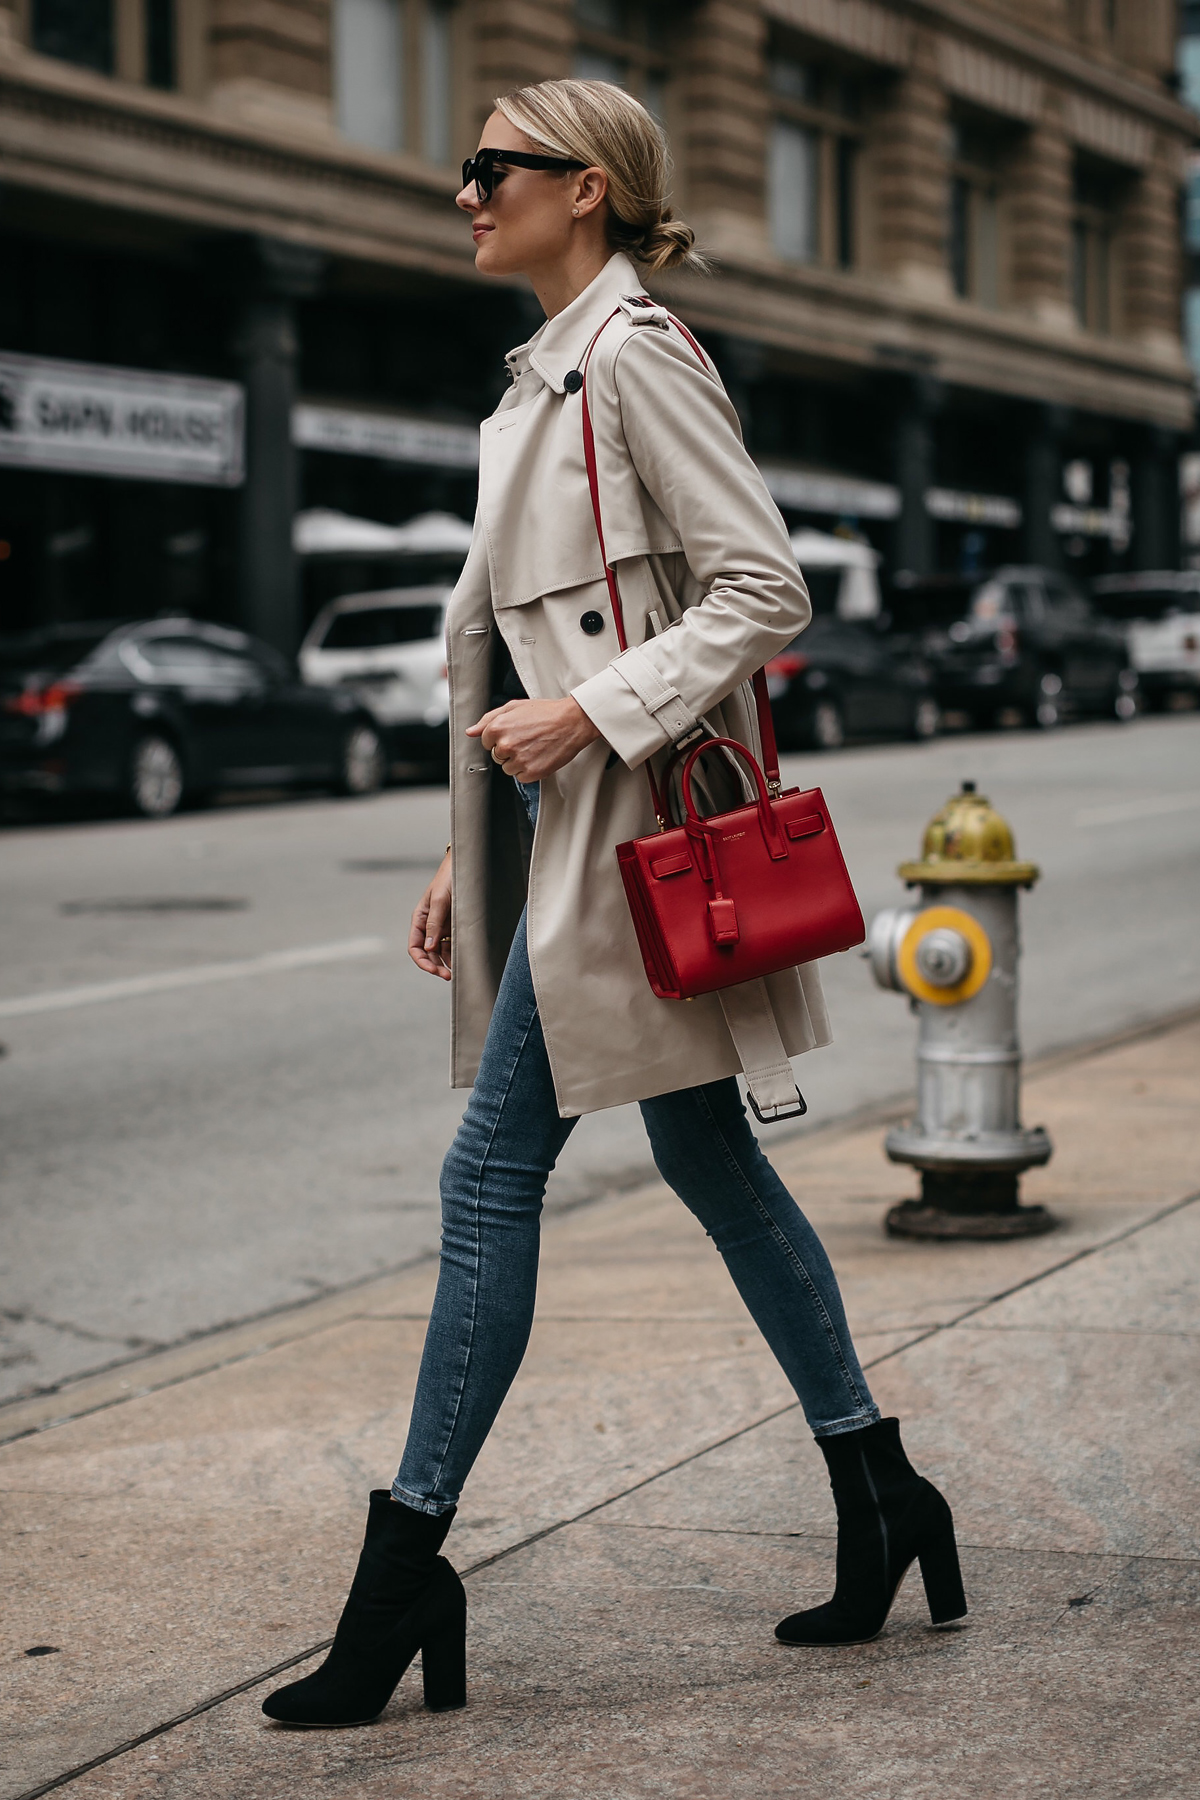 Fashion Jackson Club Monaco Trench Coat Denim Skinny Jeans Black Ankle Booties Saint Laurent Sac De Jour Red